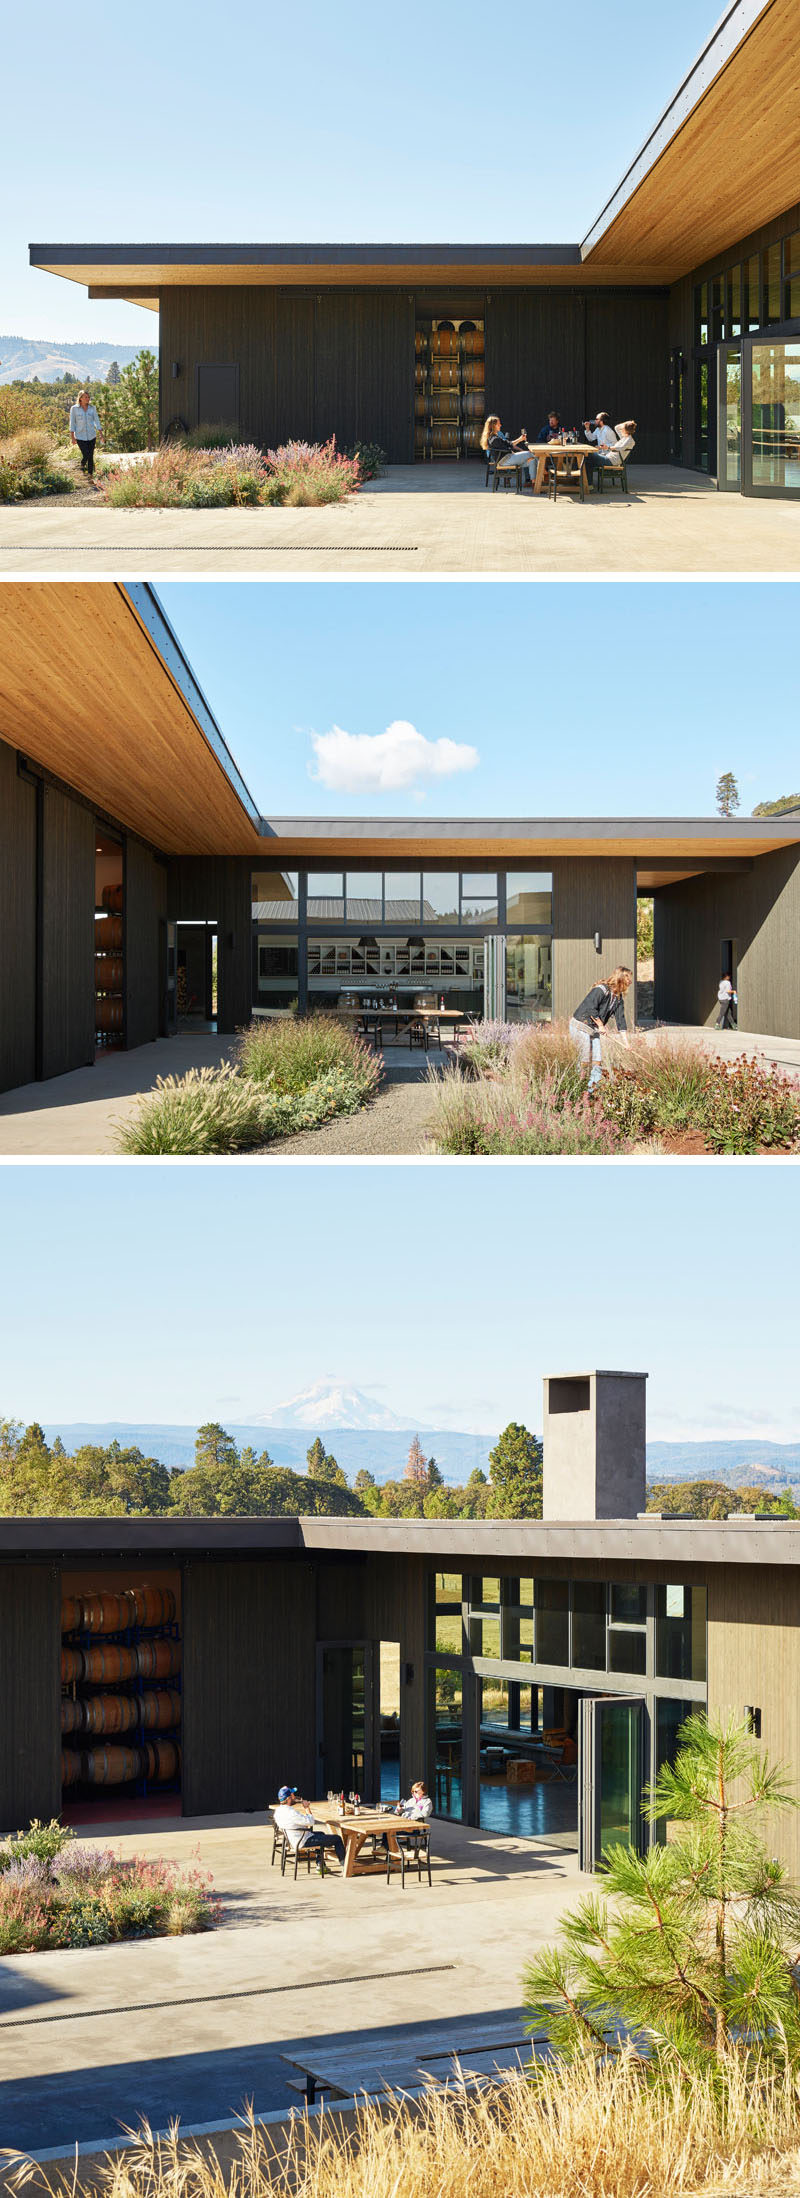 The courtyard was a desired aspect of this modern winery, as the owners wanted to be able to host events, musical performances and communal dinners.